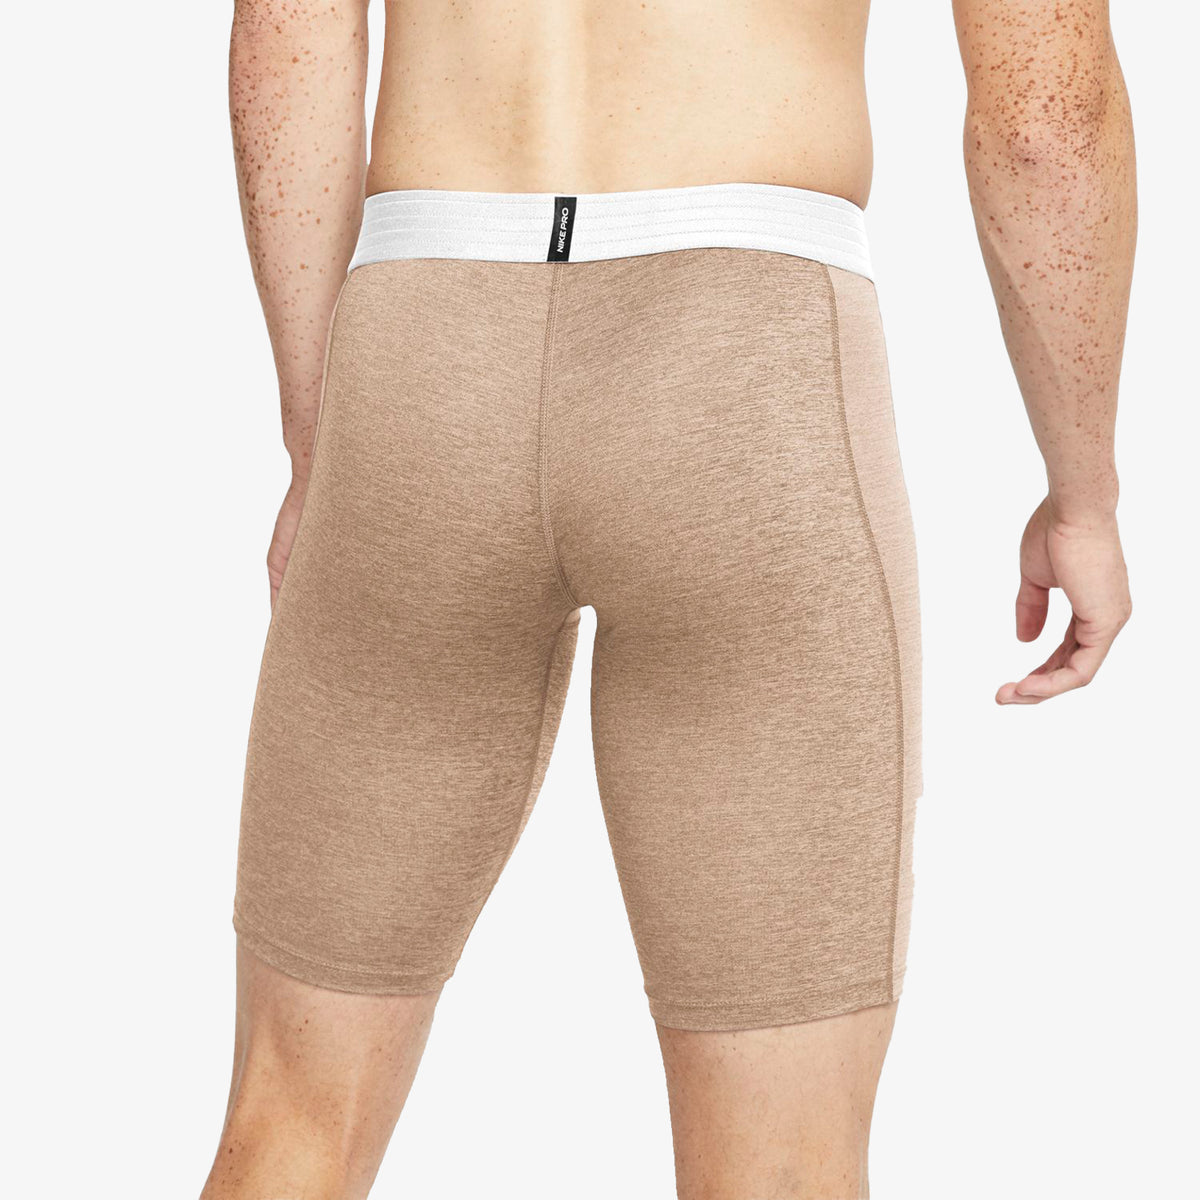 Nike Pro Men's Shorts - Shimmer/White